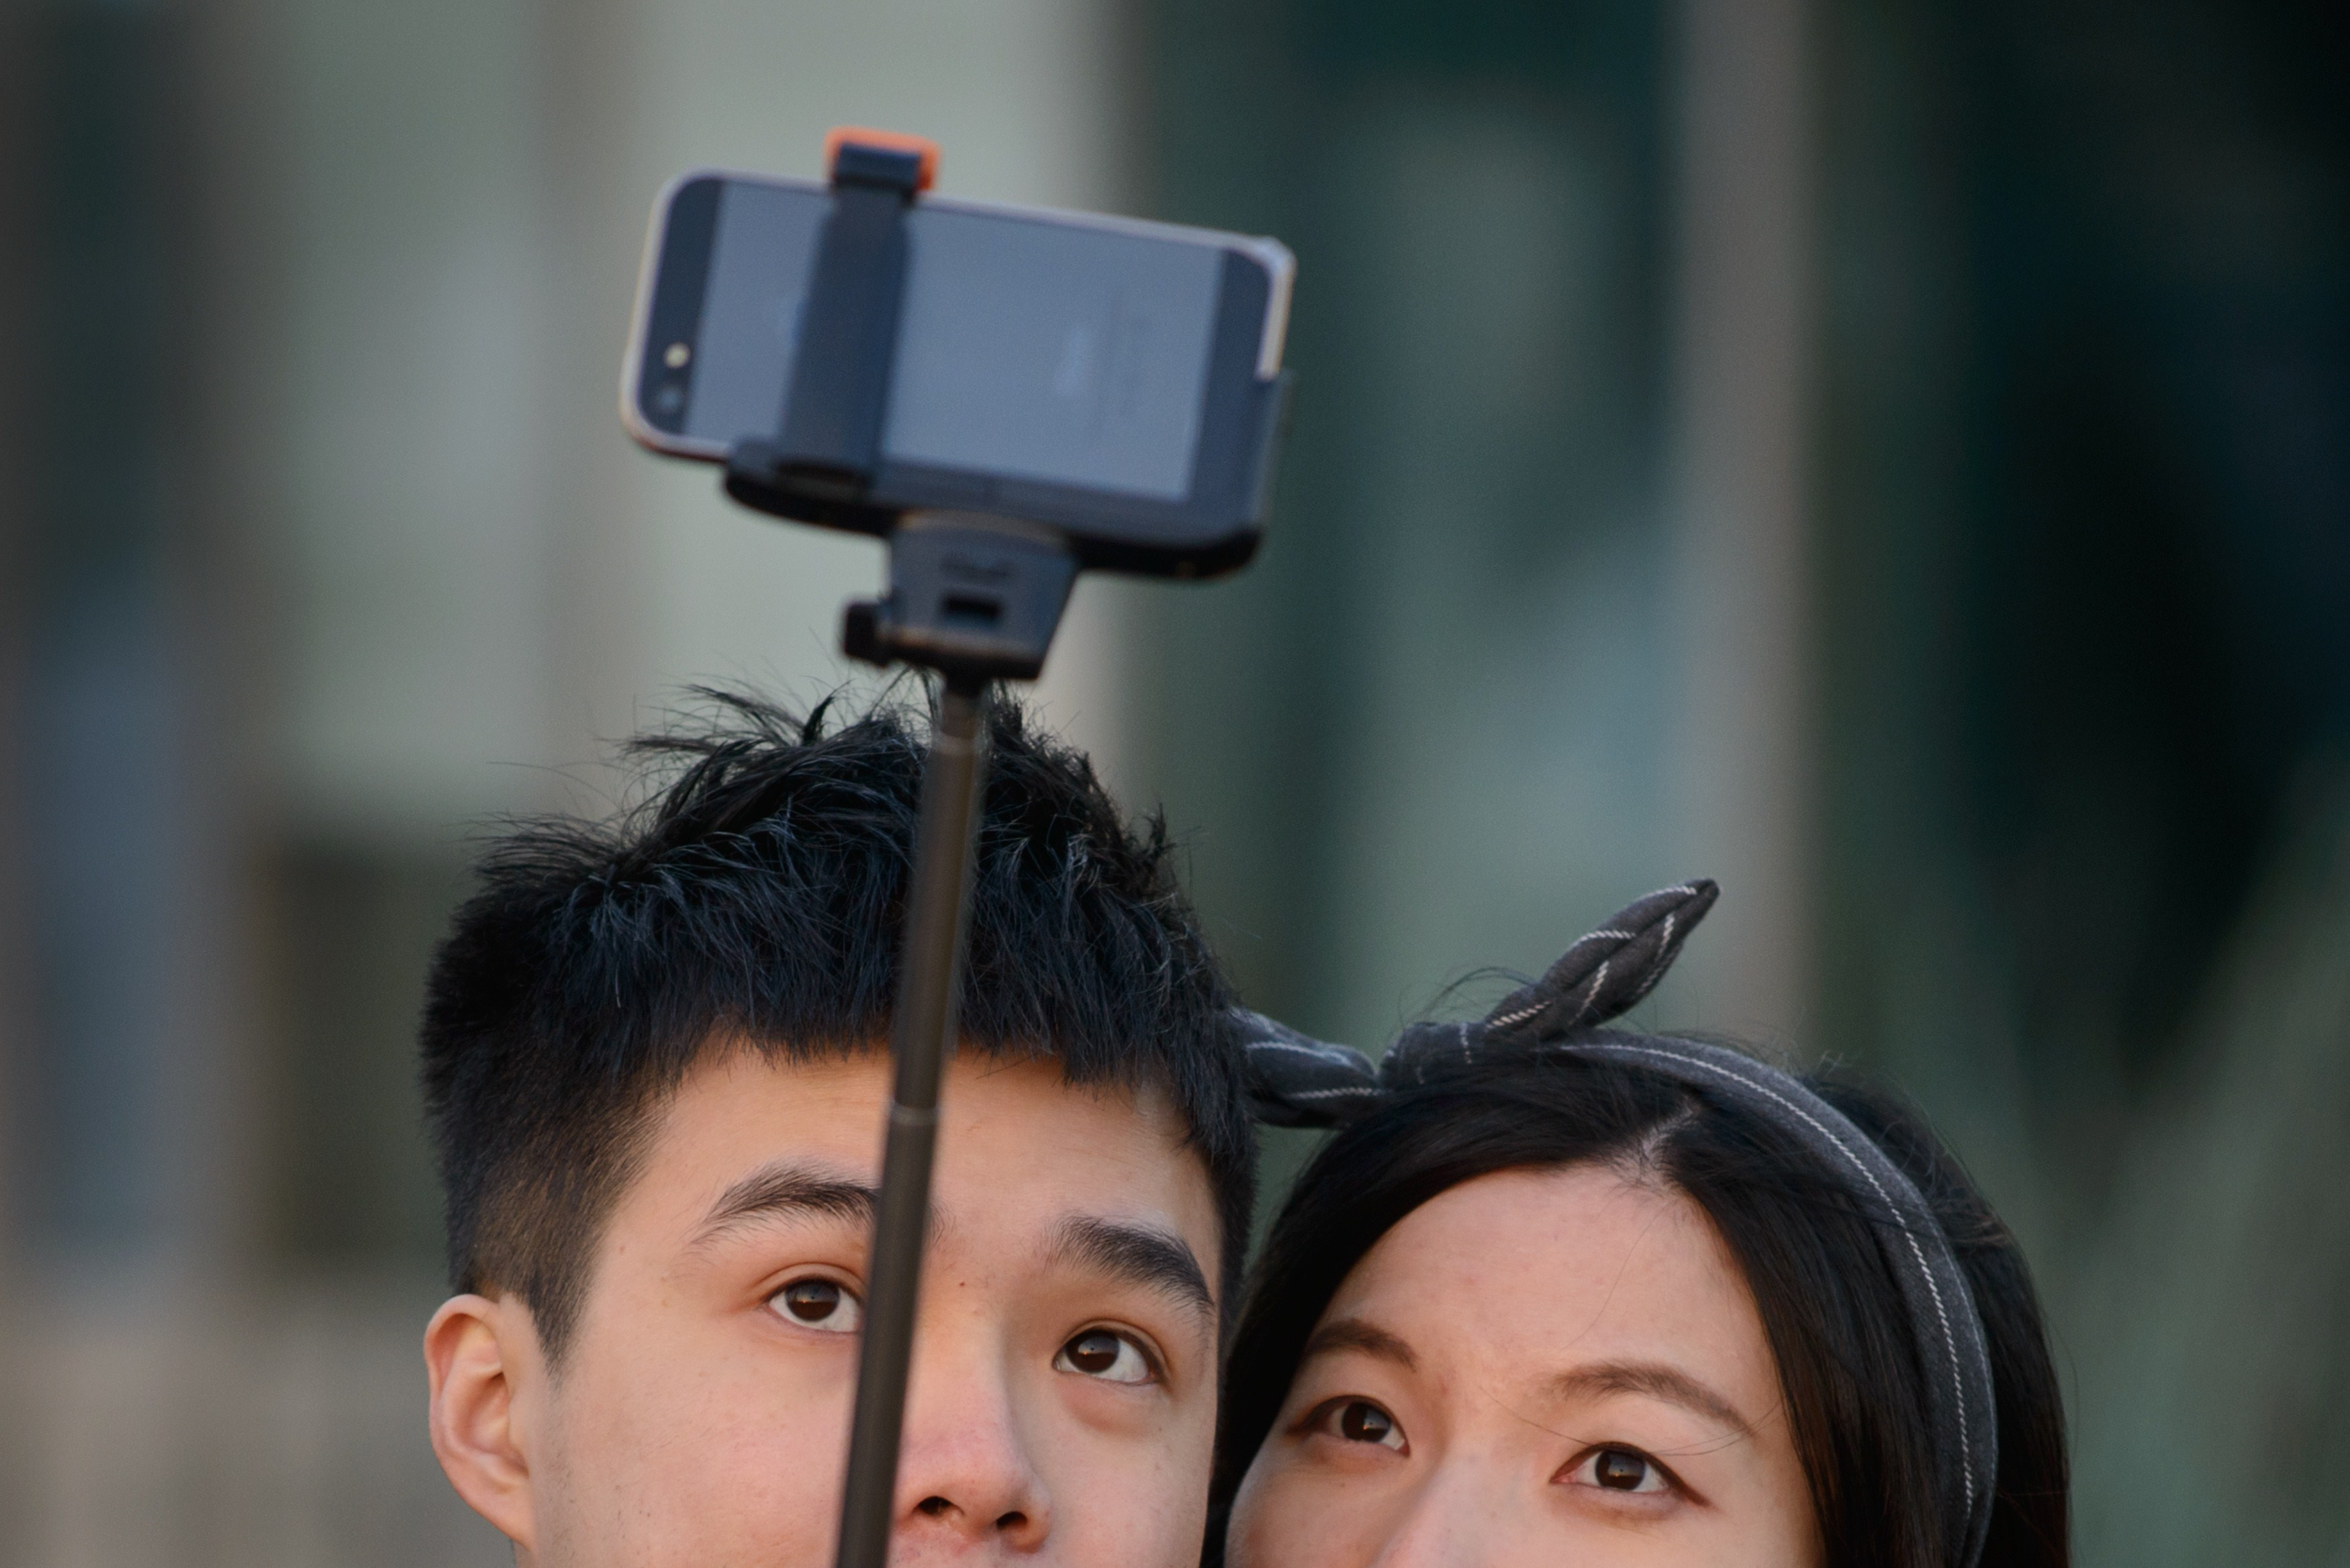 SKOREA-LIFESTYLE-TECHNOLOGY-CRIME-SELFIE